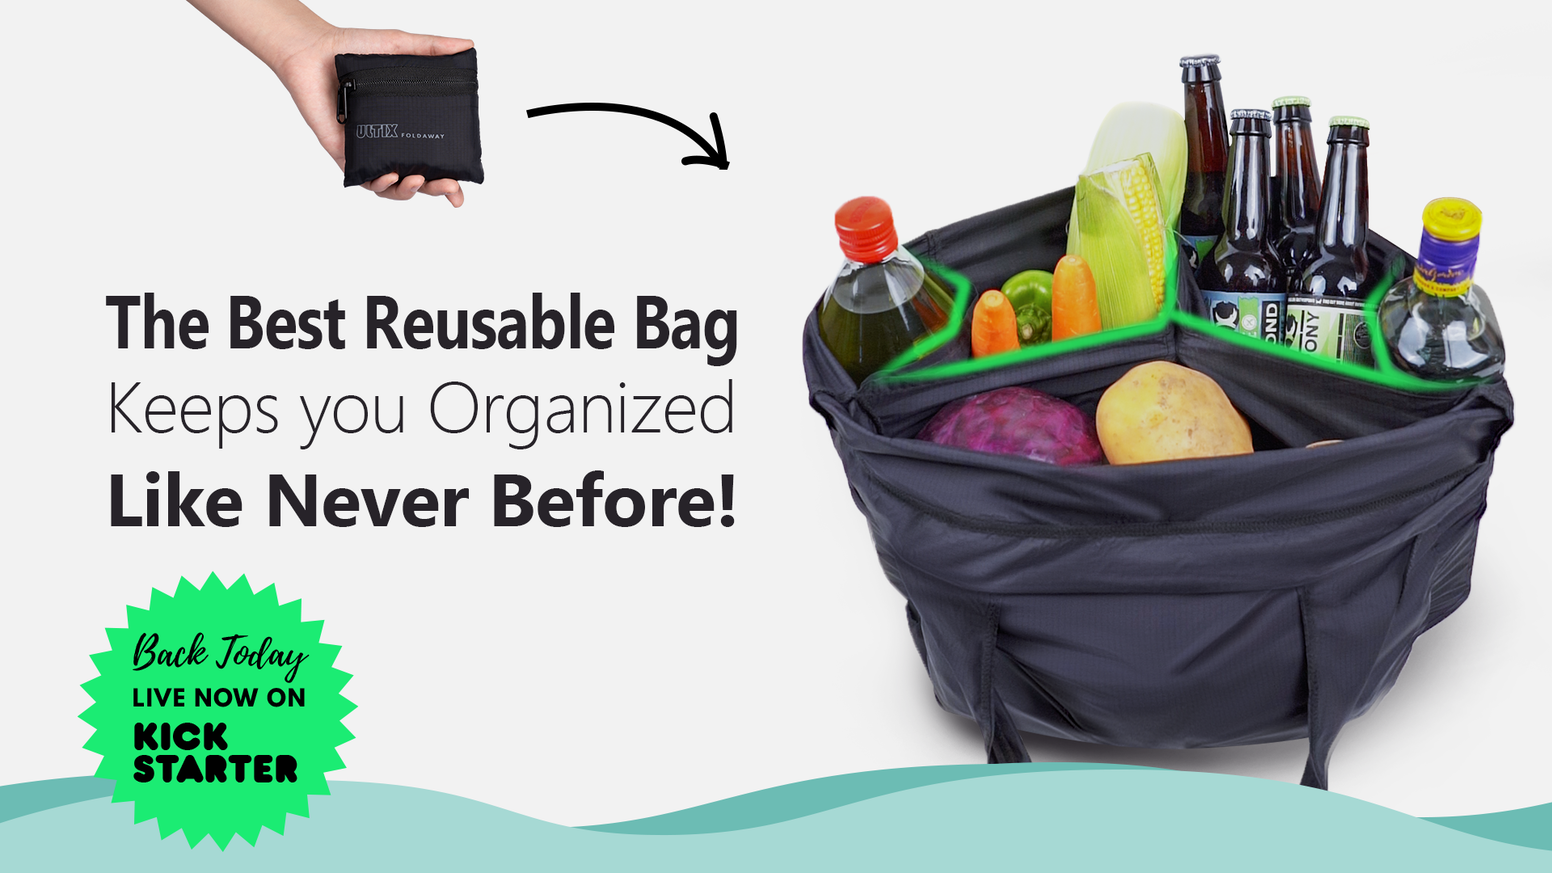 Super-strong, Super-smart, Super-low profile. It's a day bag, an organizer, a grocery bag, and a knapsack all in one.